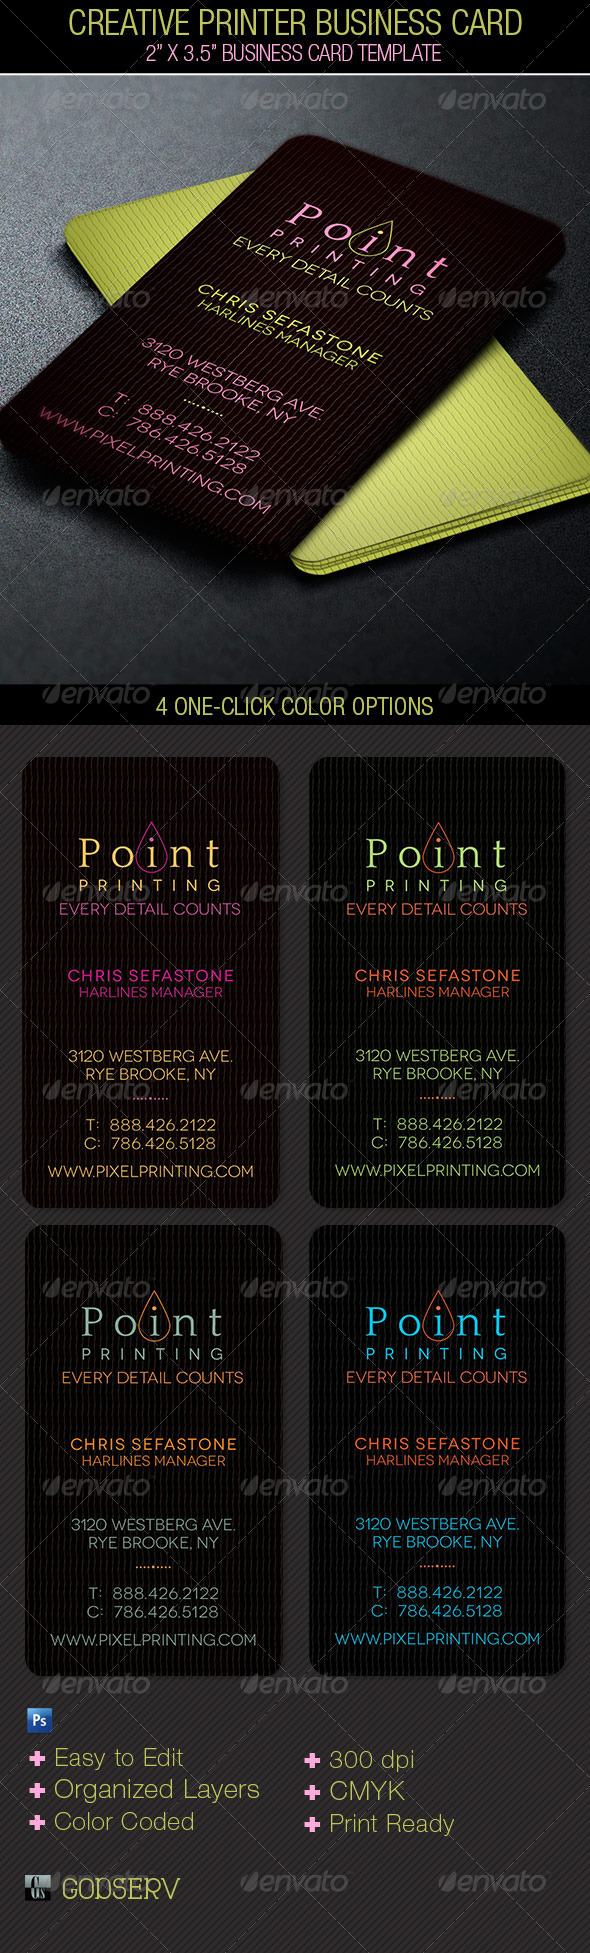 GraphicRiver Creative Printer Business Card Template 5330504